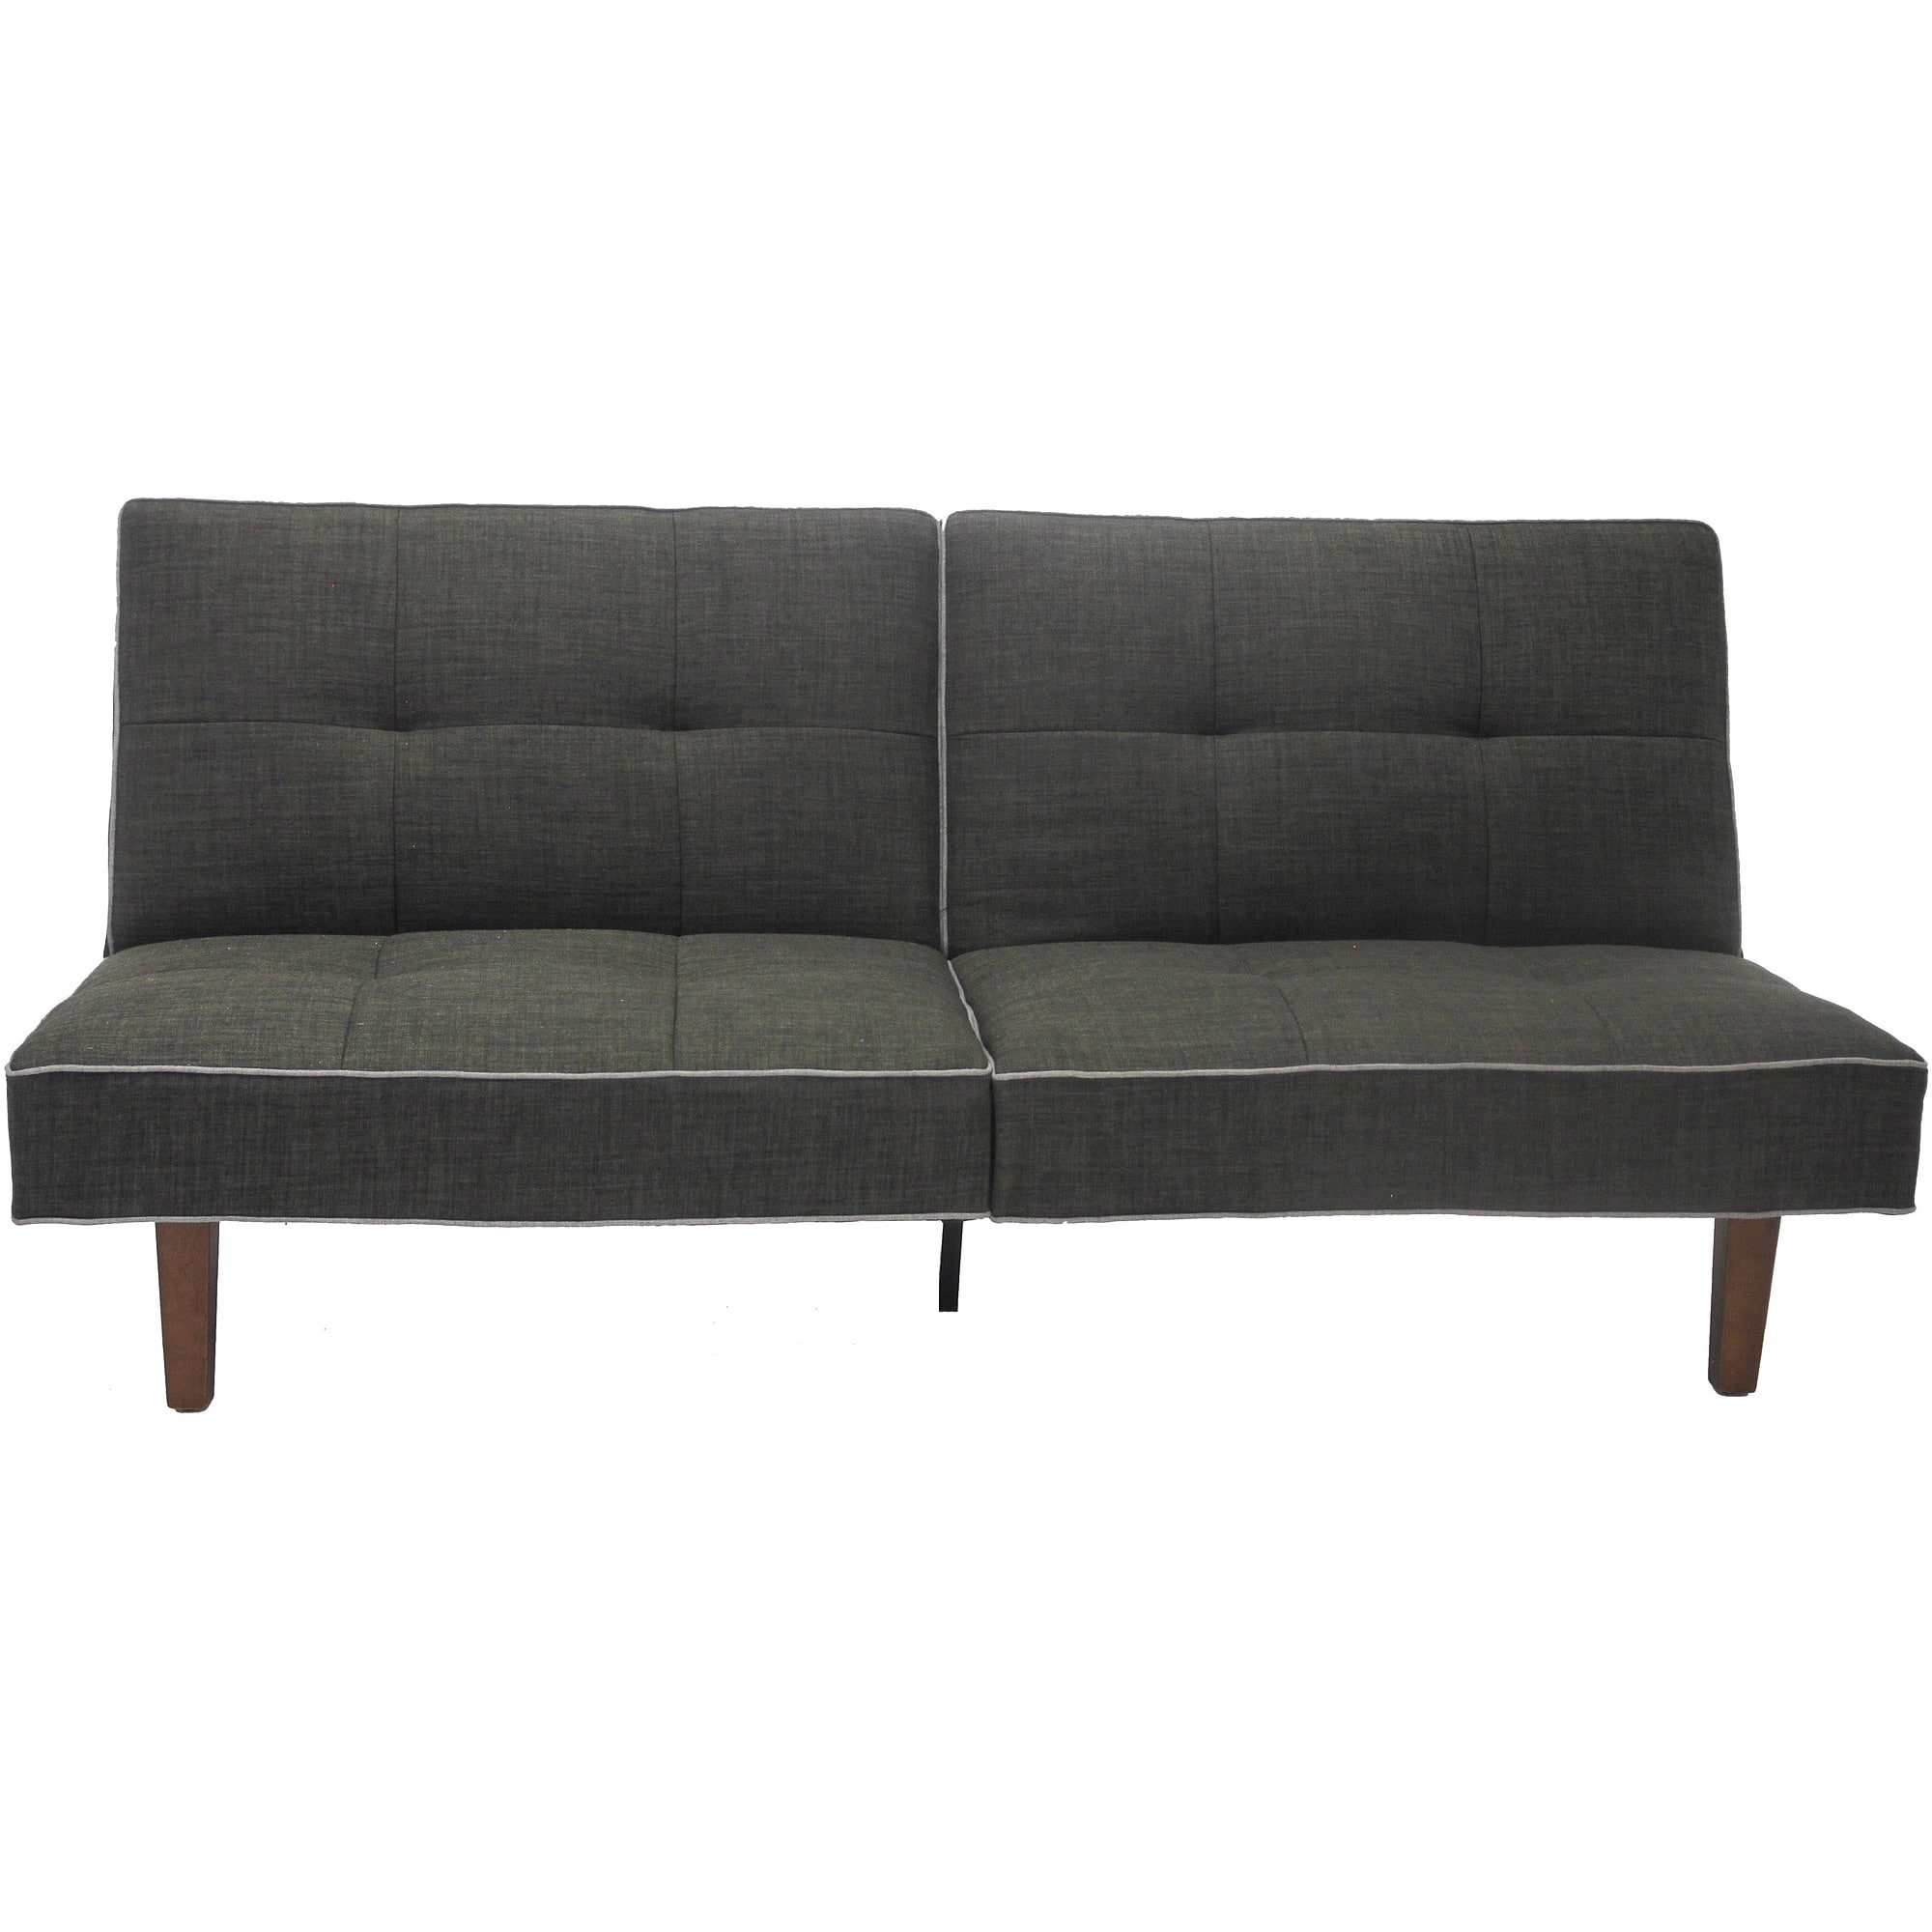 ... Small Living Room Furniture Walmart By Kebo Futon Sofa Bed 99 Walmart  With Fs Slickdeals Net ...